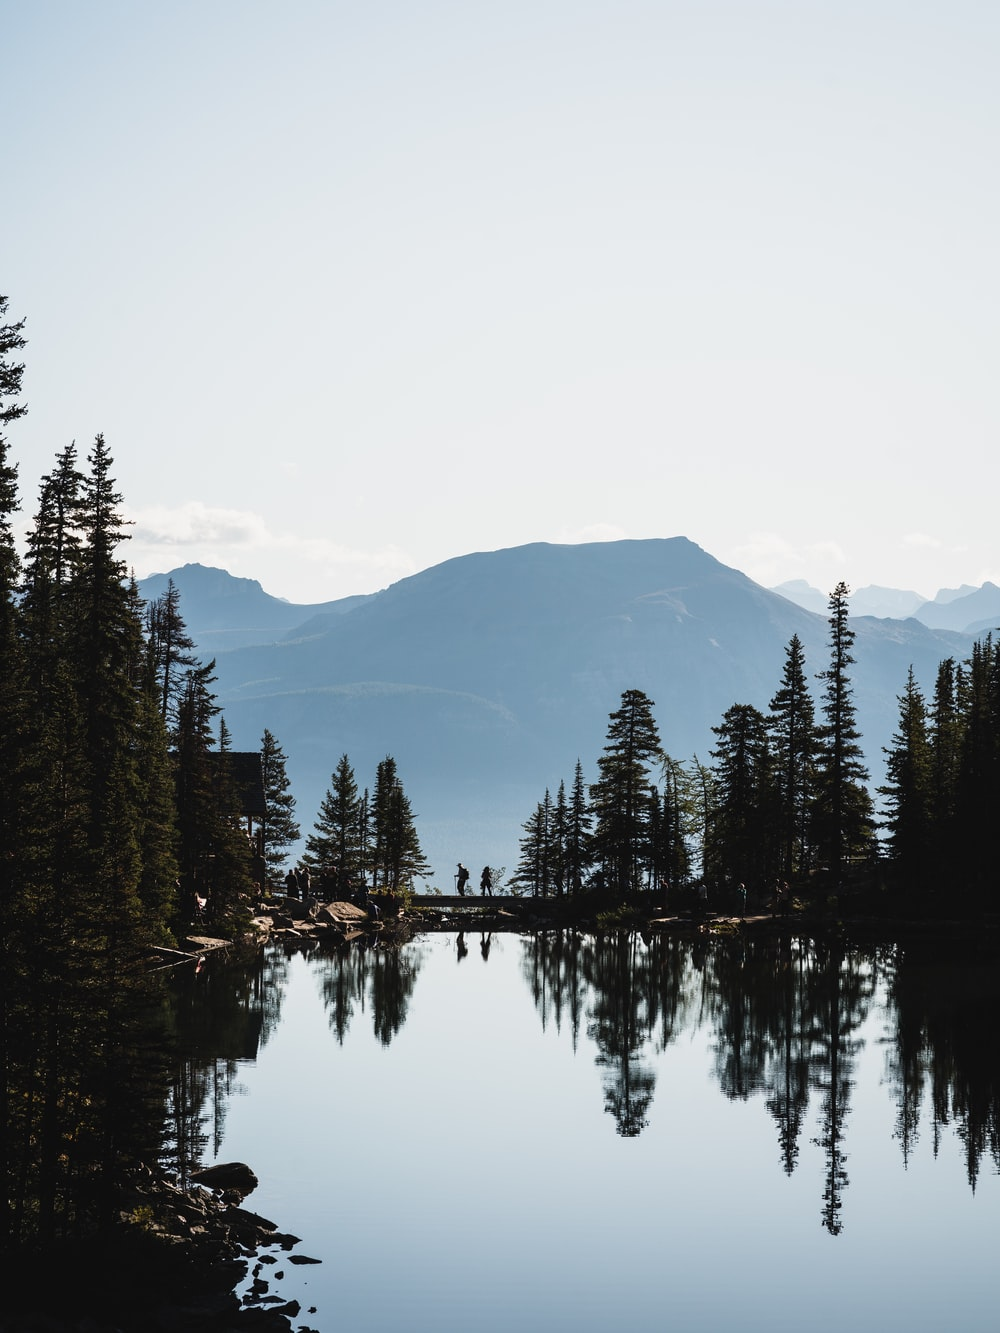 body of water surrounded by trees under white sky